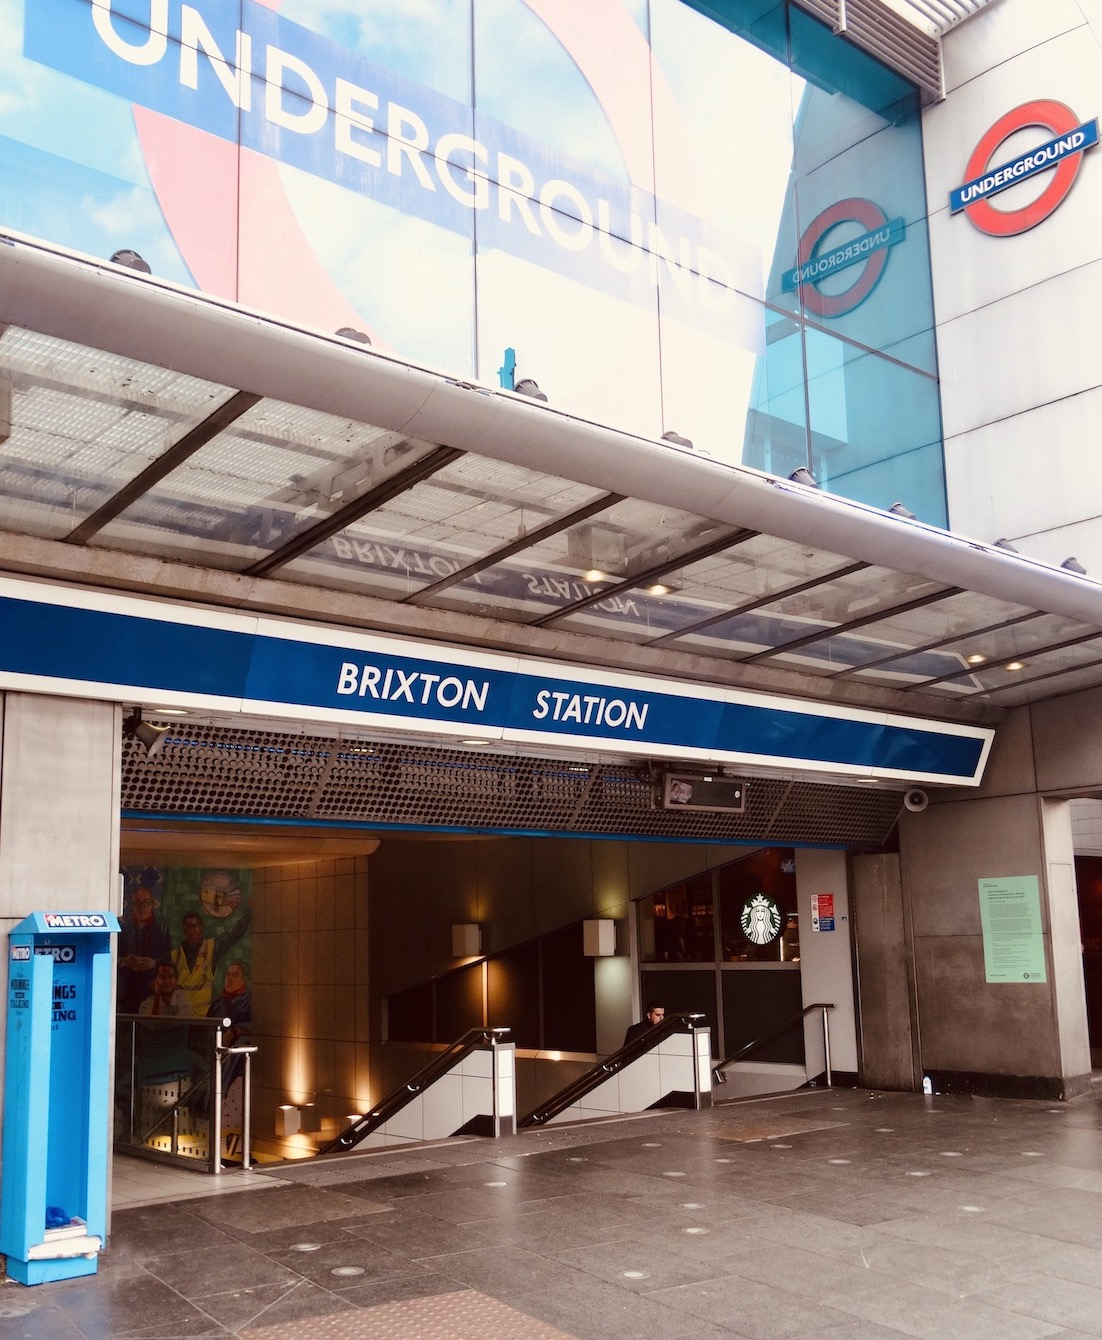 Brixton Tube Station in London.